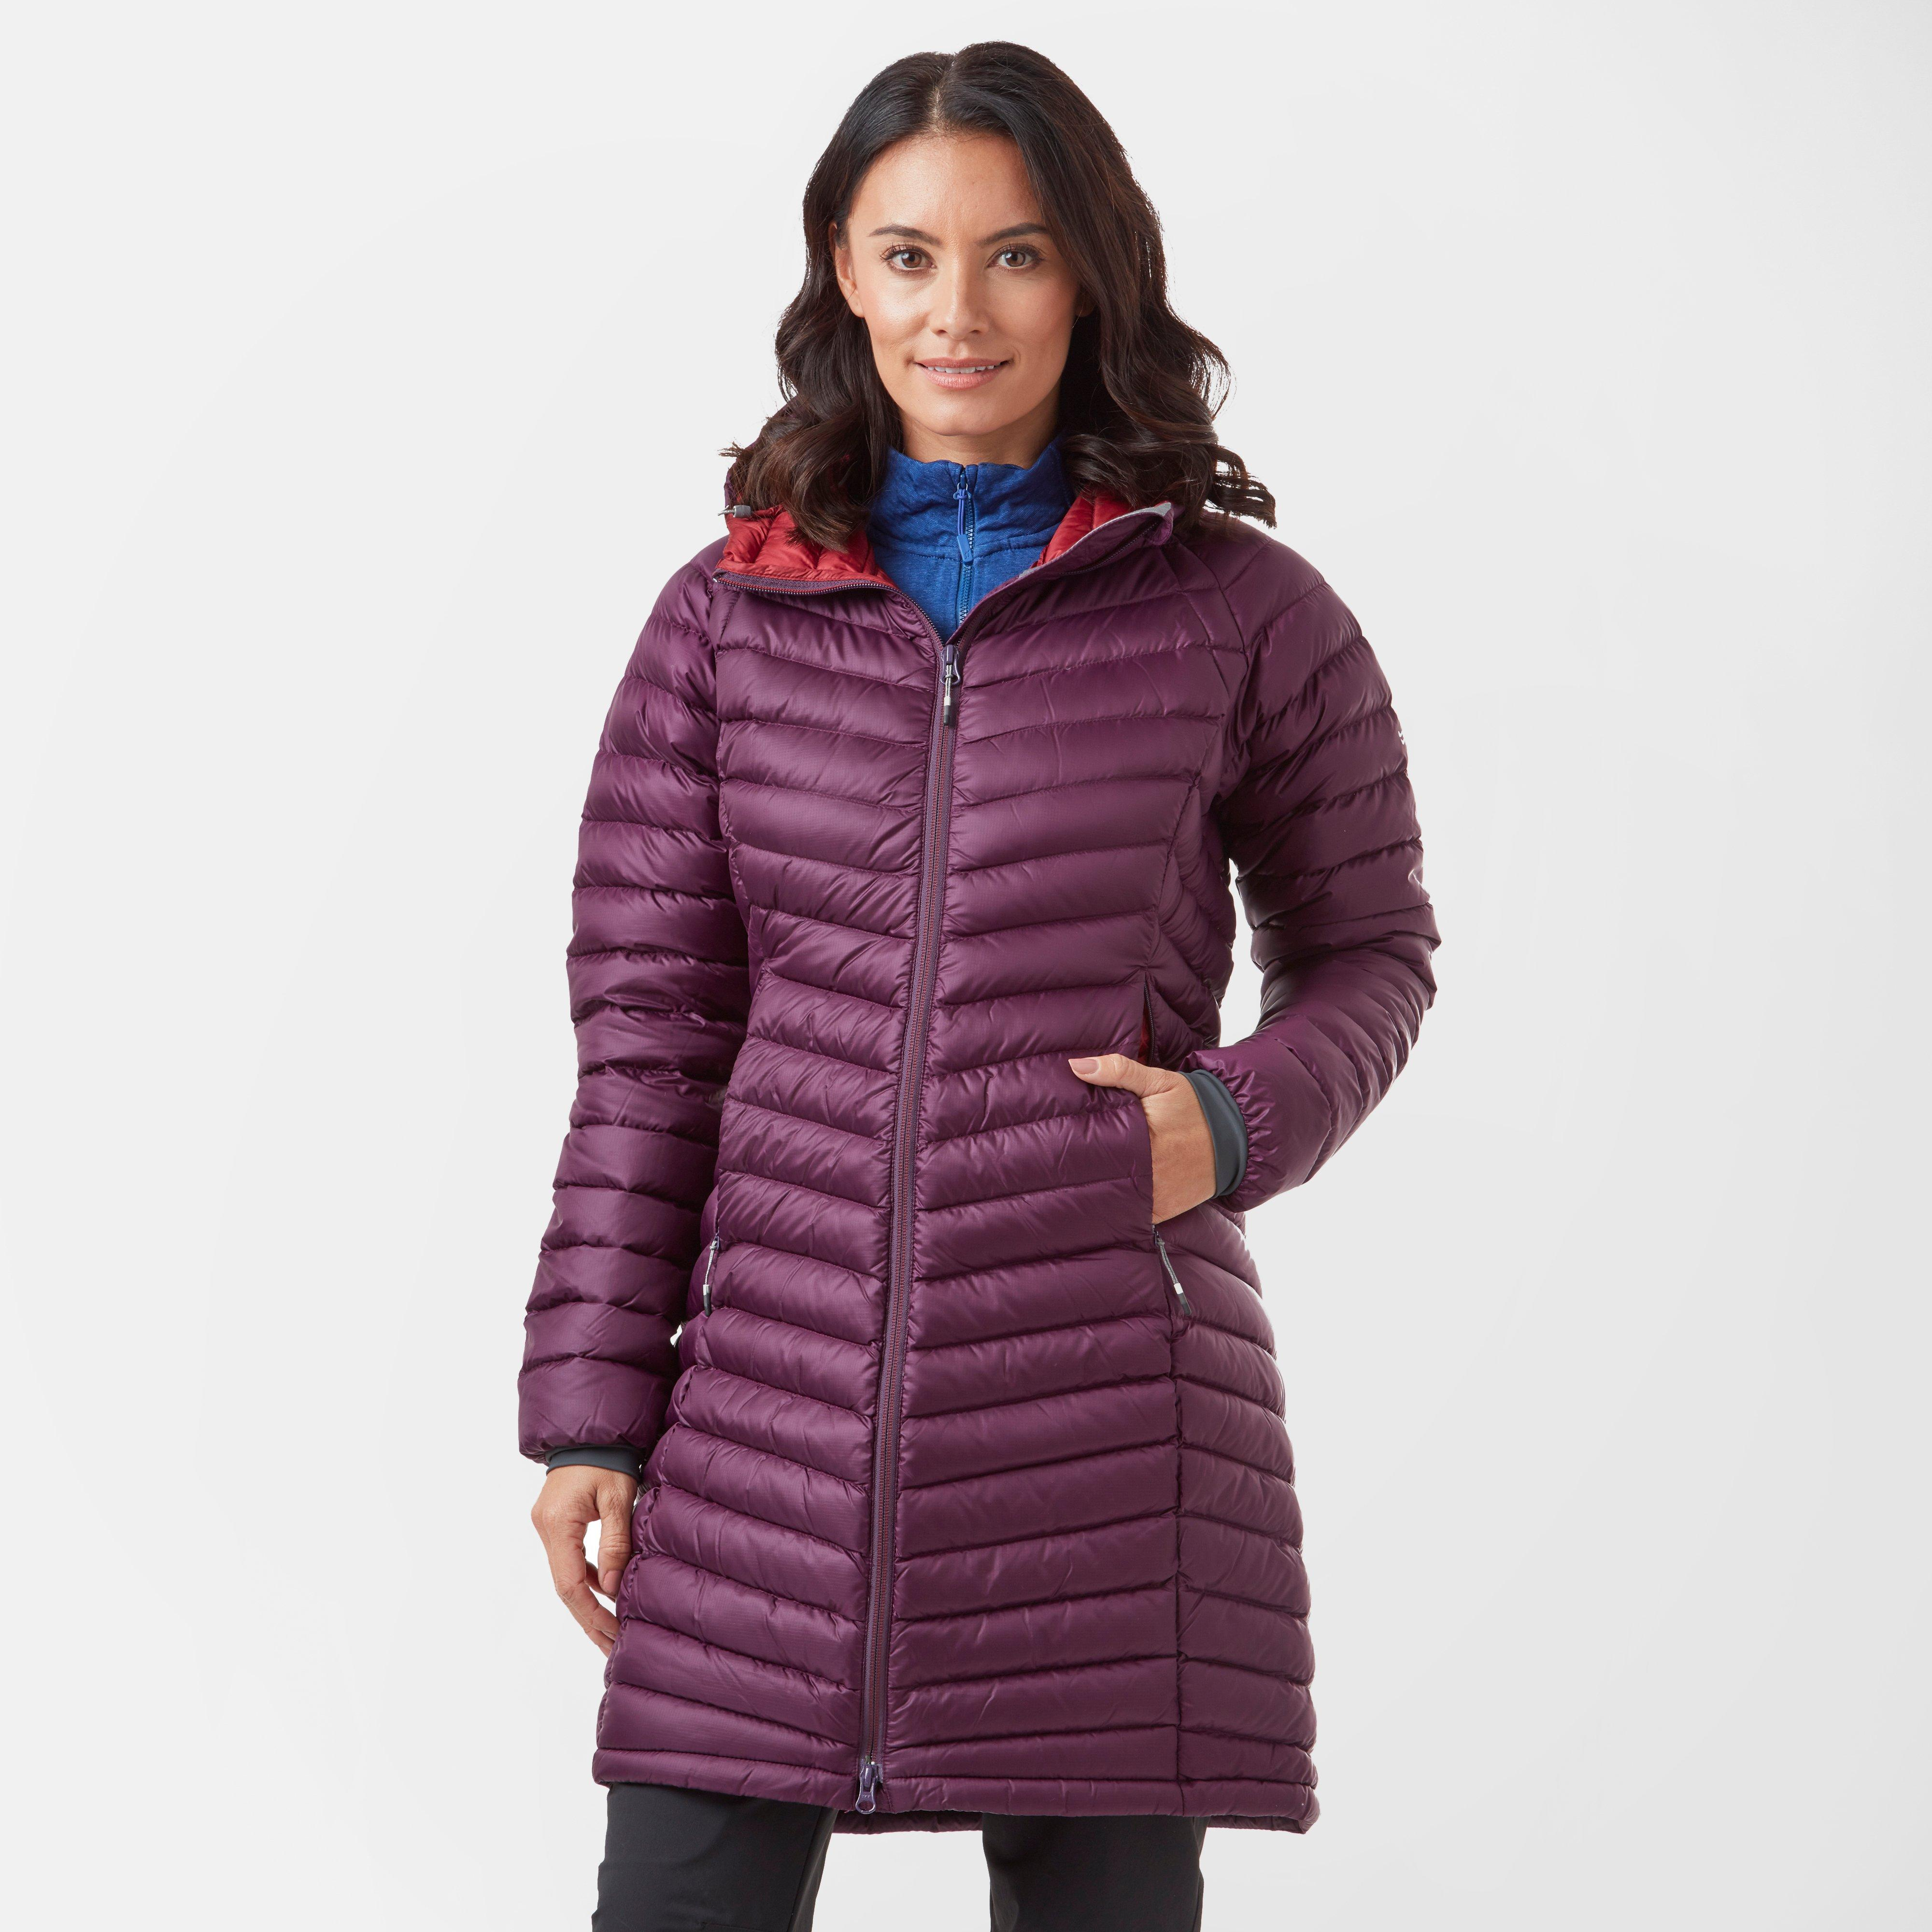 aaa32d94af Rab Microlight Parka – Women's | Compare outdoor jacket prices at ...